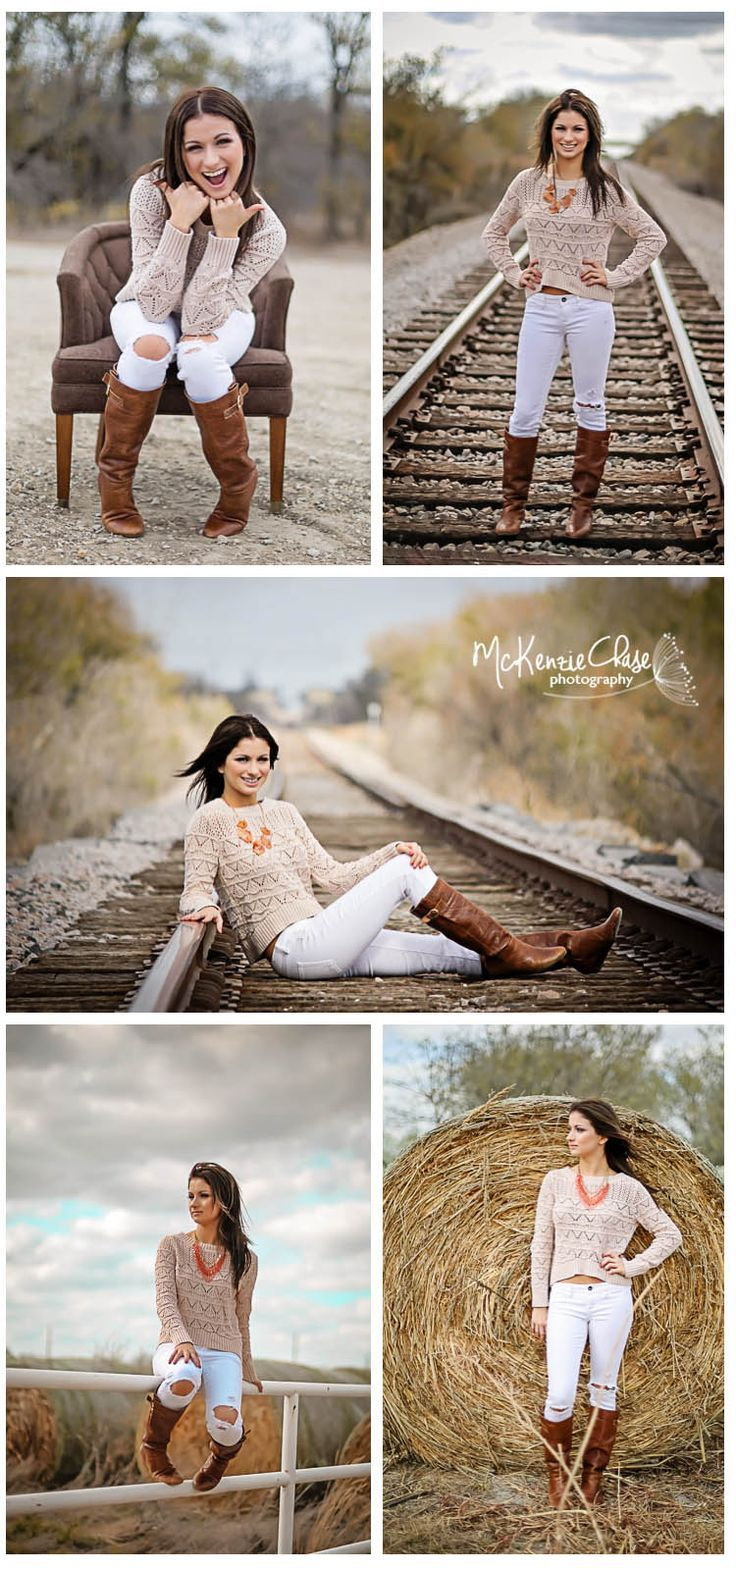 Senior Photography - Senior Poses - country - boots - train track - natural - brown chair - hay barrel